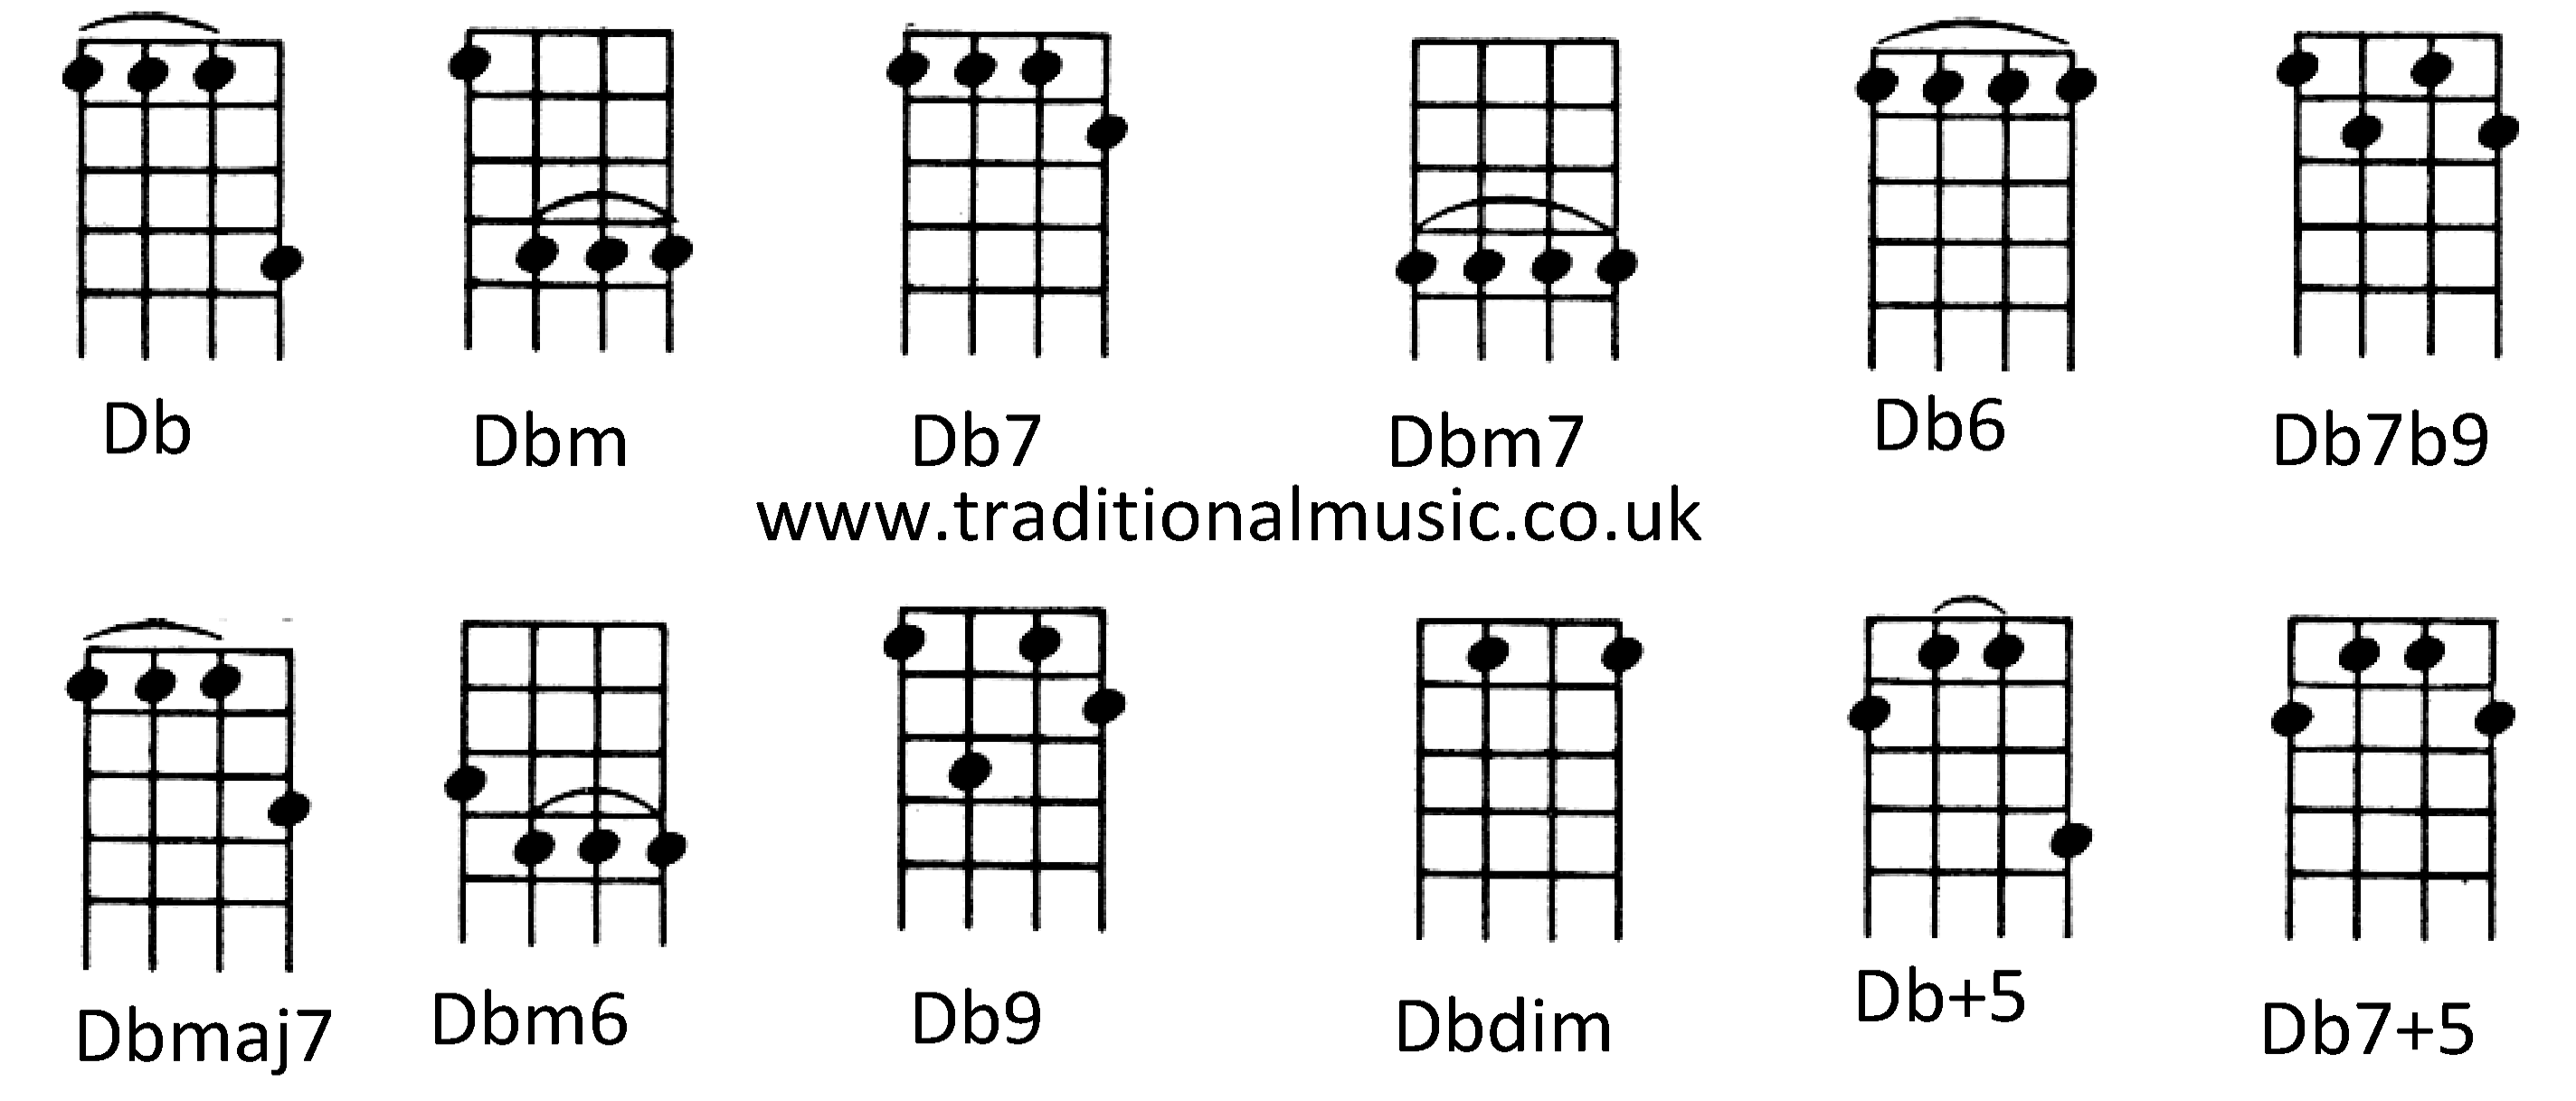 Chords For Ukulele C Tuning Db Dbm Db7 Dbm7 Db6 Db7b9